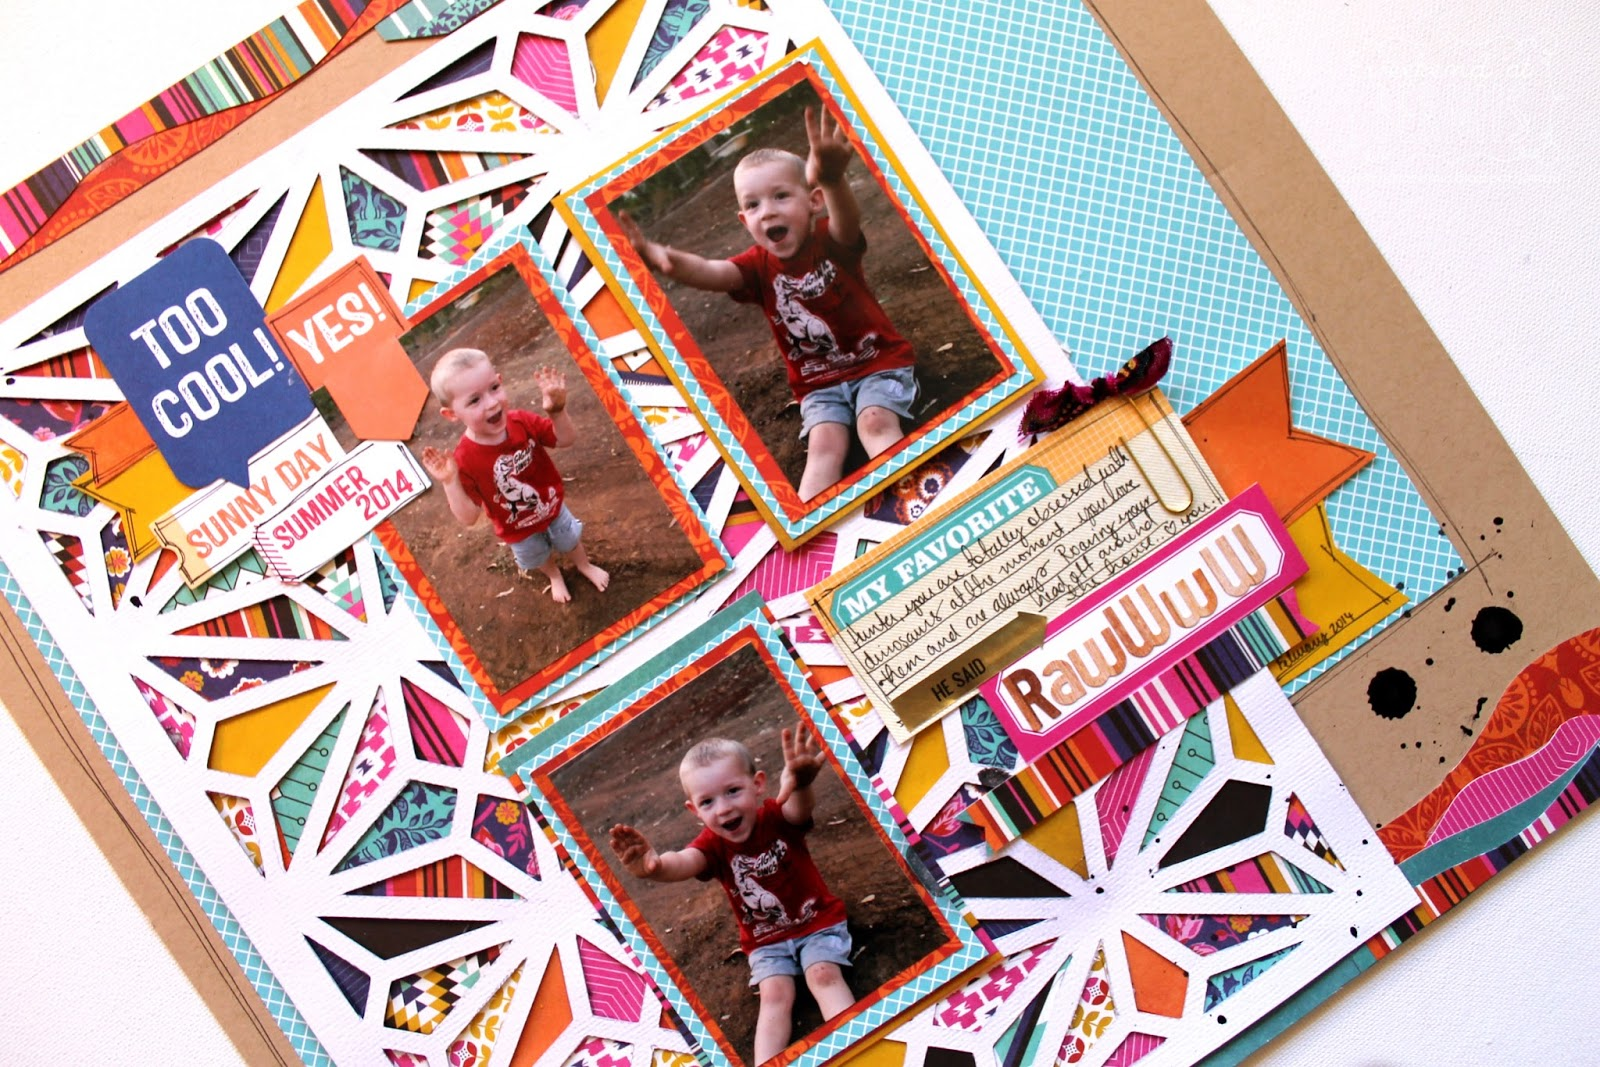 Rawwww Scrapbook layout by Bernii Miller using Basic Grey and Elles Studio